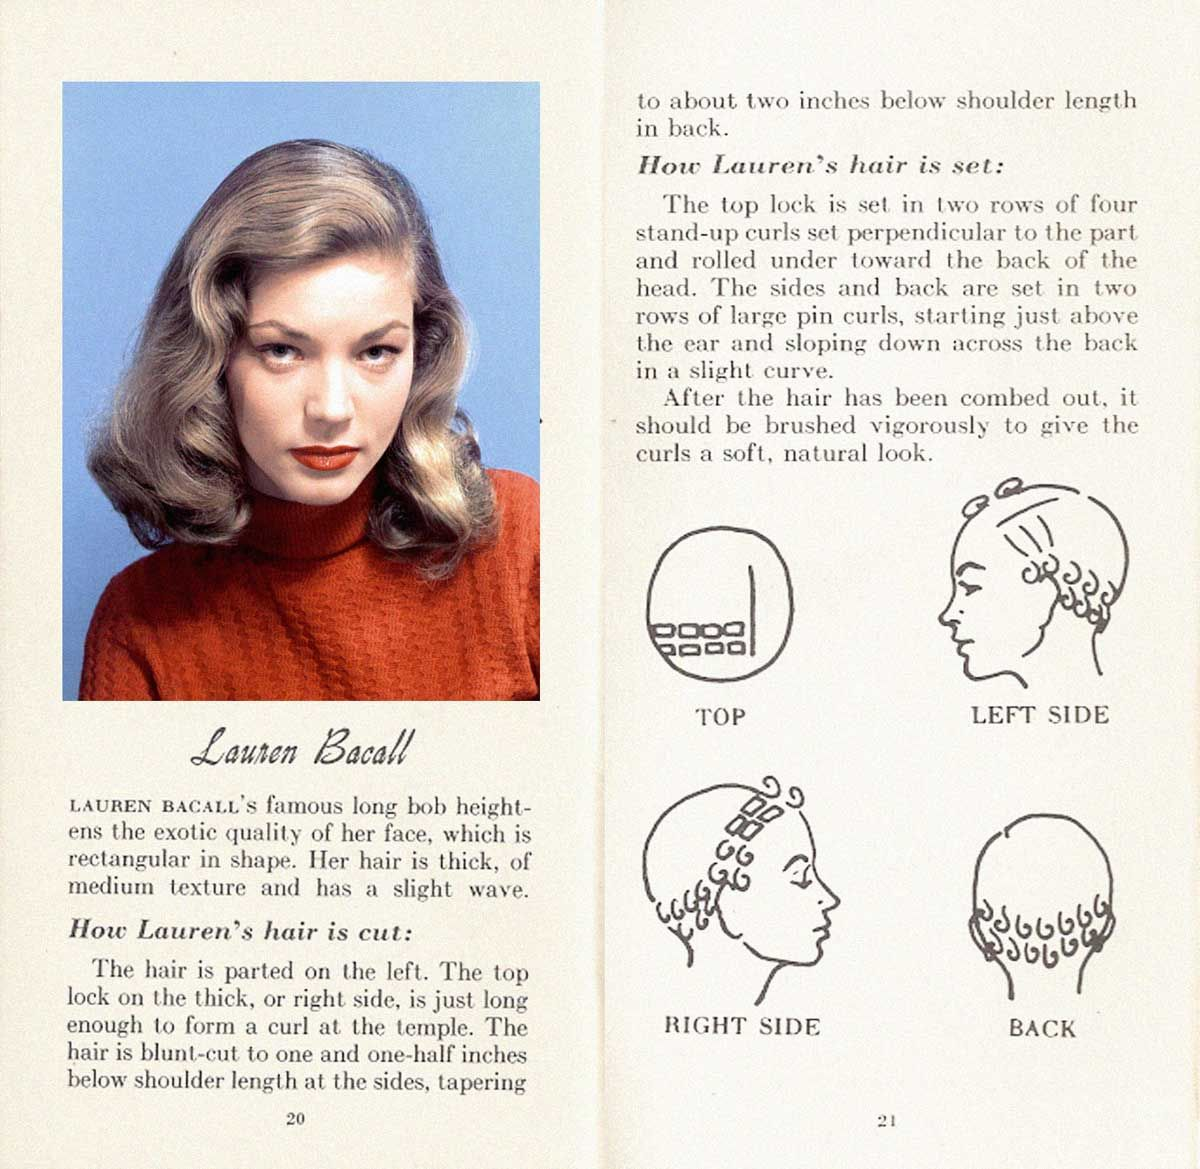 10 hollywood hairstyles of the 50s | hair/ makeup/etc. in